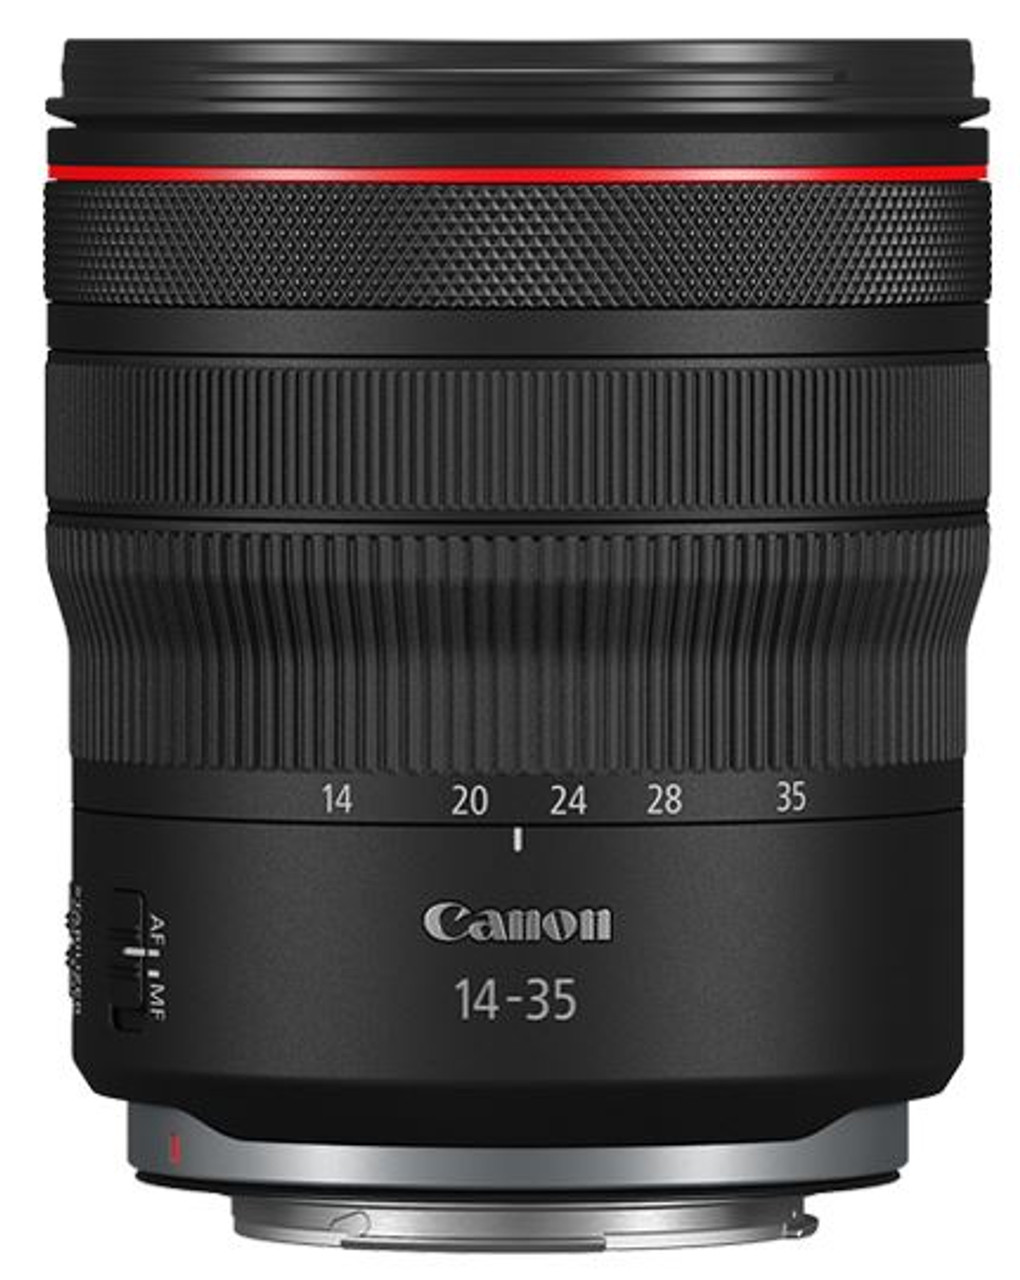 Canon RF 14-35mm f/4L IS USM Lens